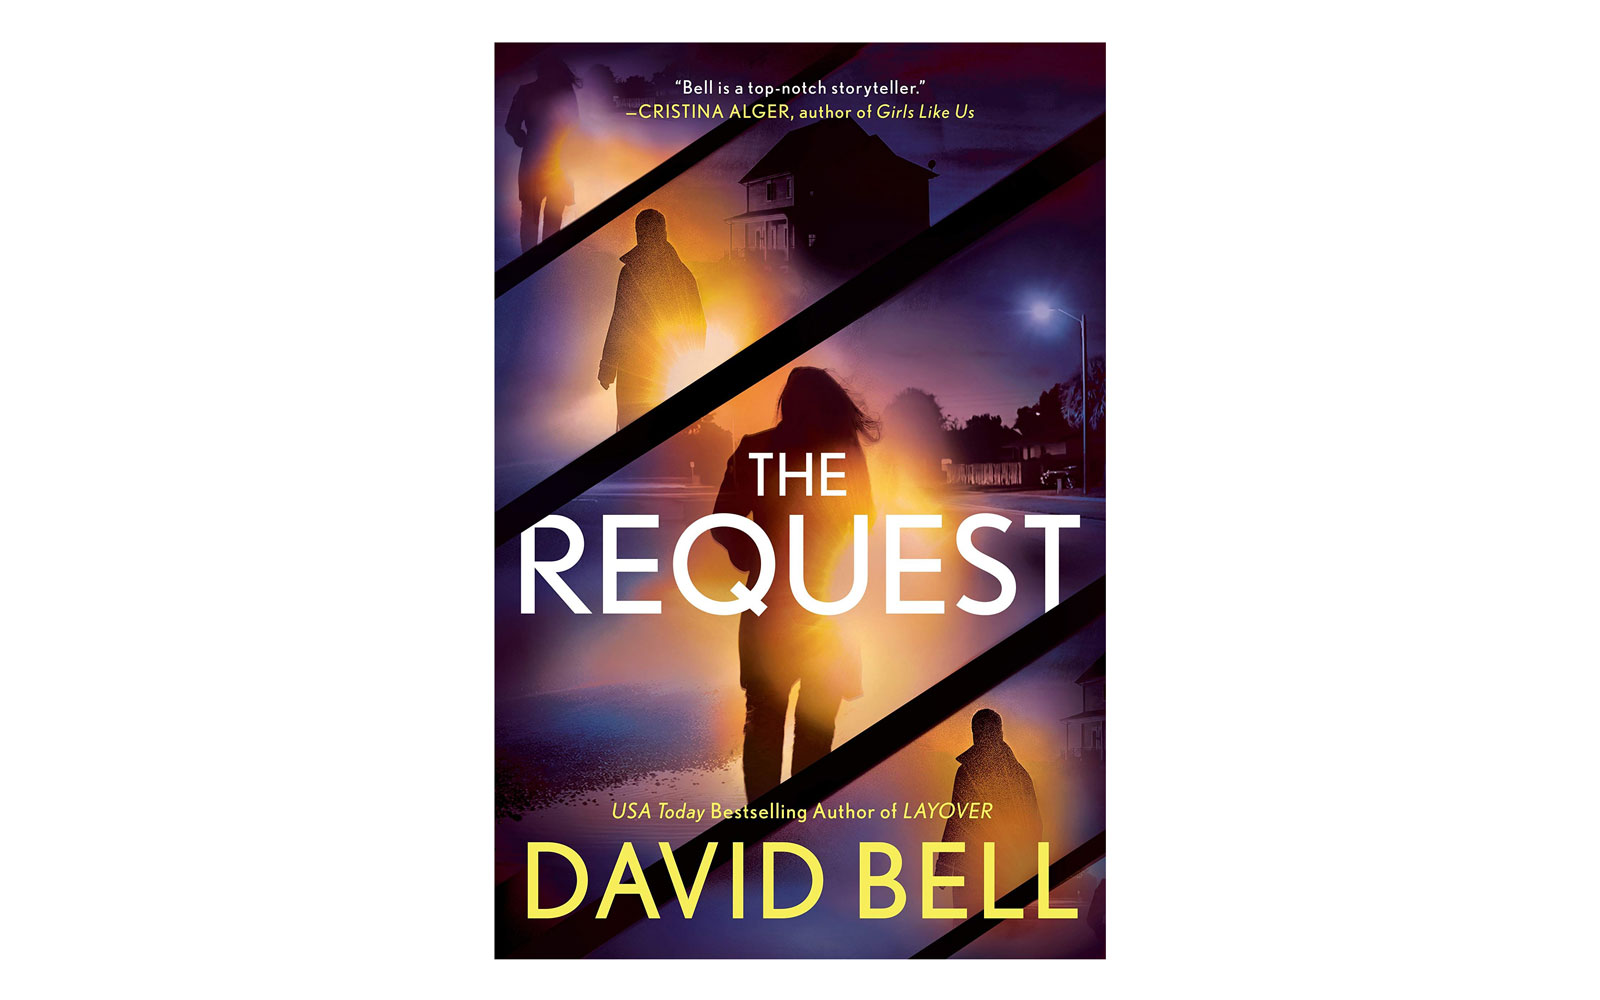 The Request book